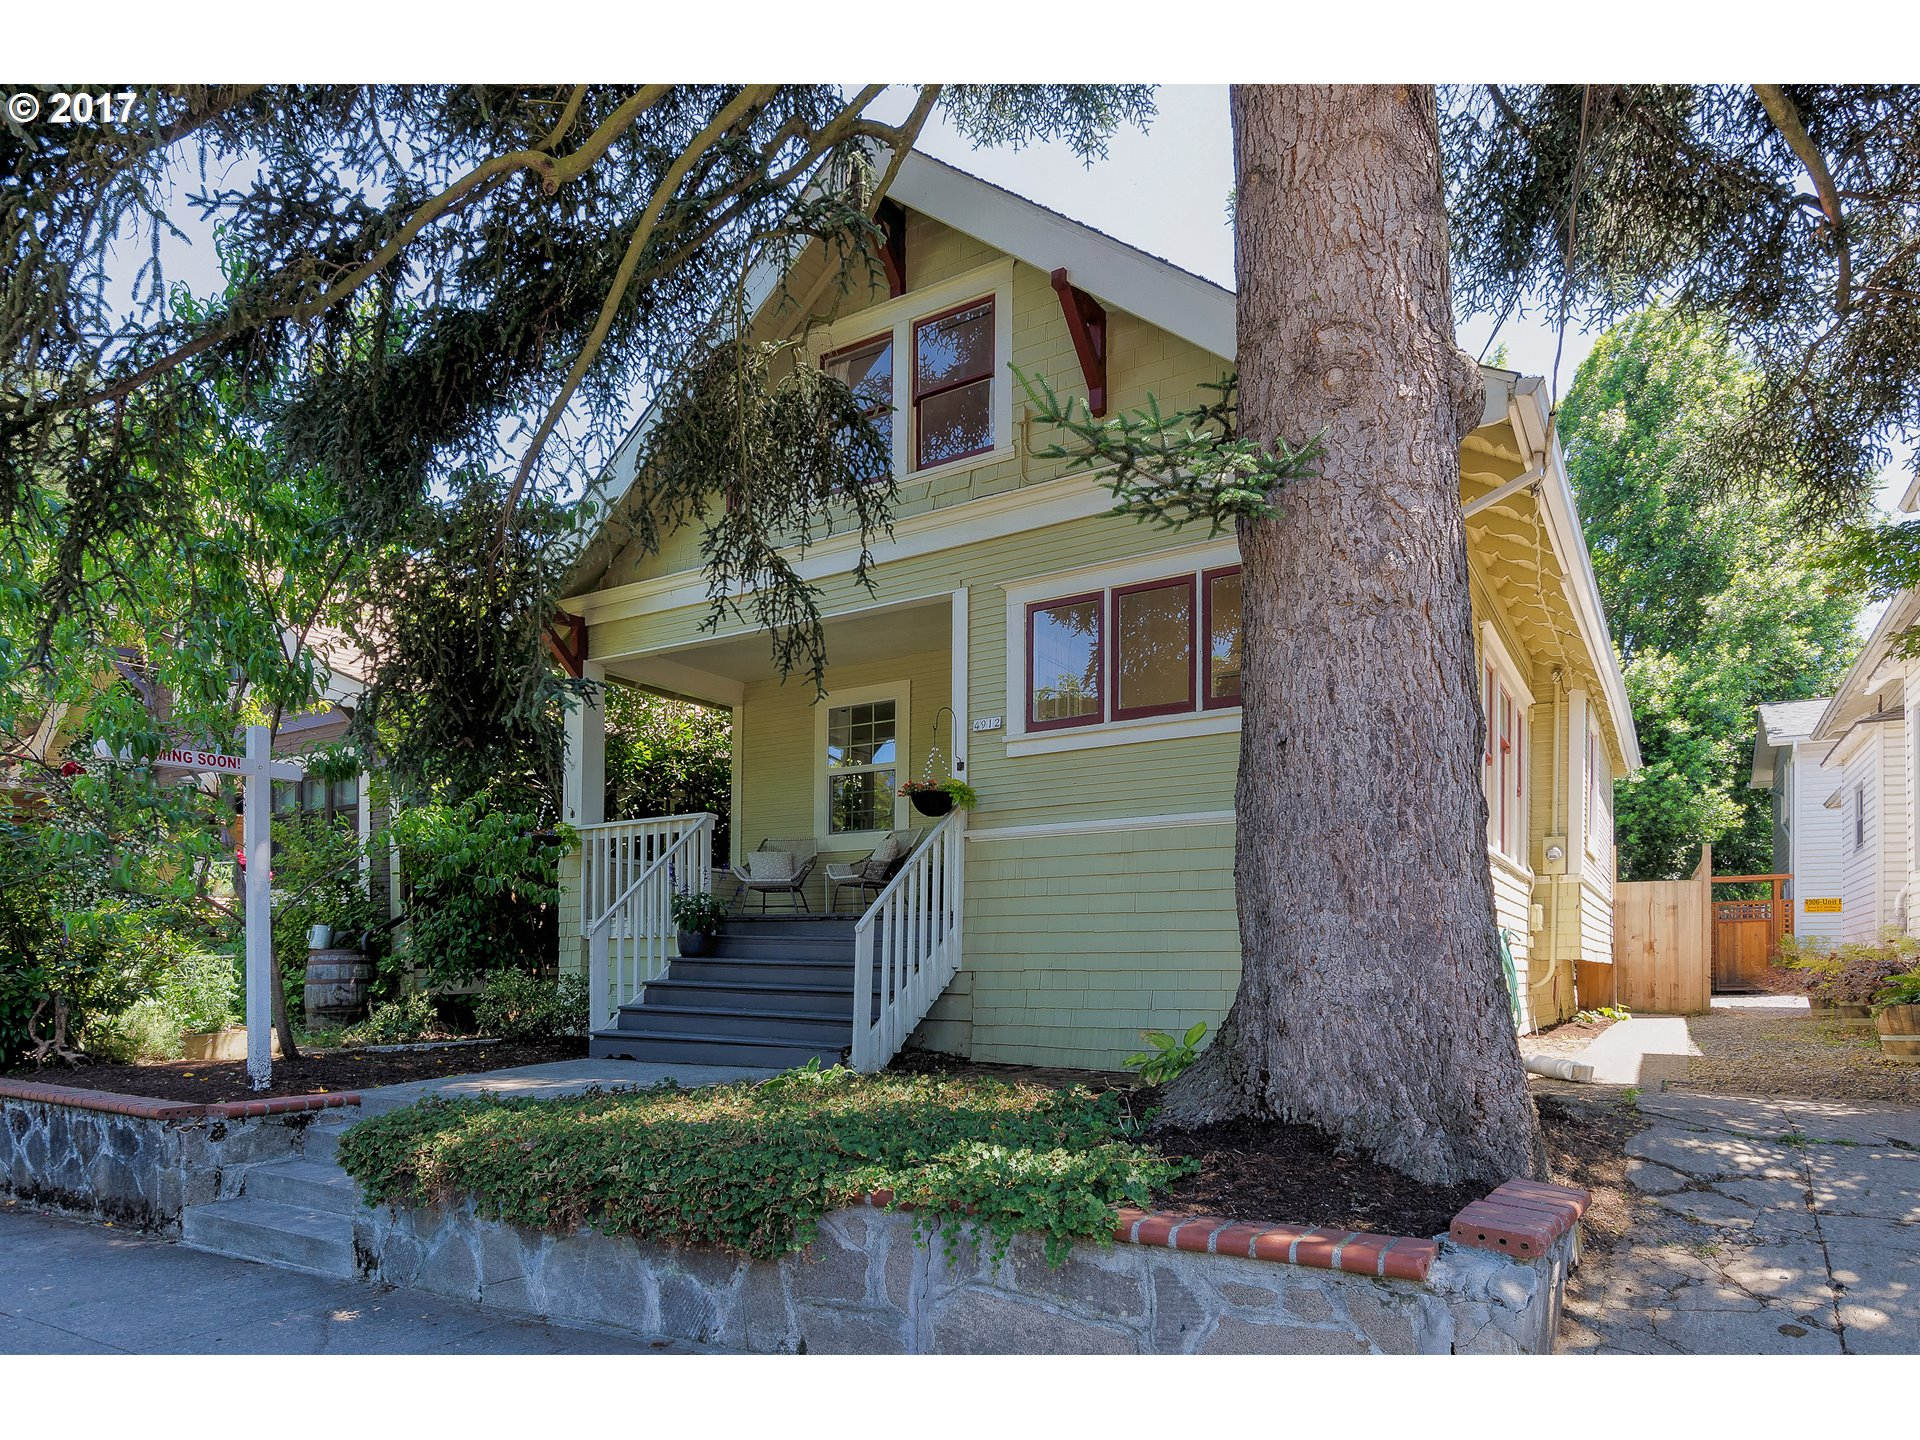 4912 NE 22ND AVE, Portland, OR 97211